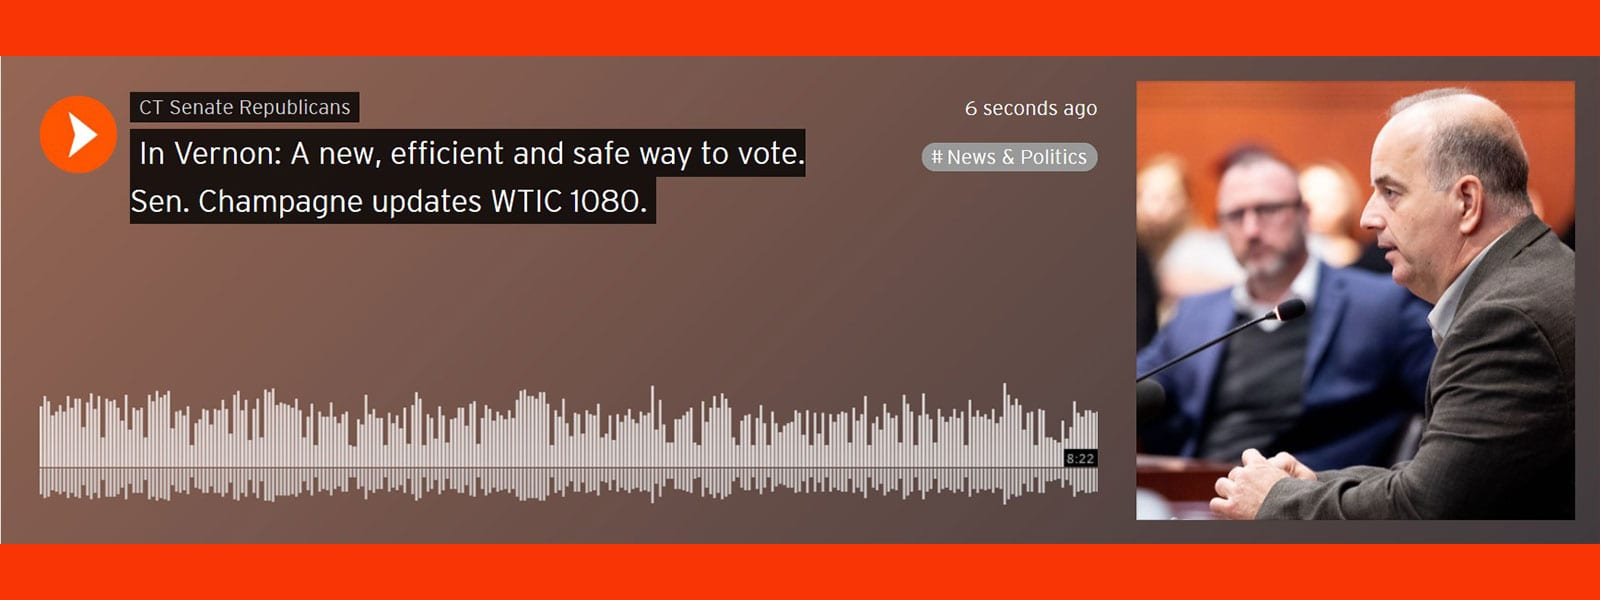 Sen. Champagne on WTIC 1080: a creative approach to voting in Vernon, ideas for opening businesses